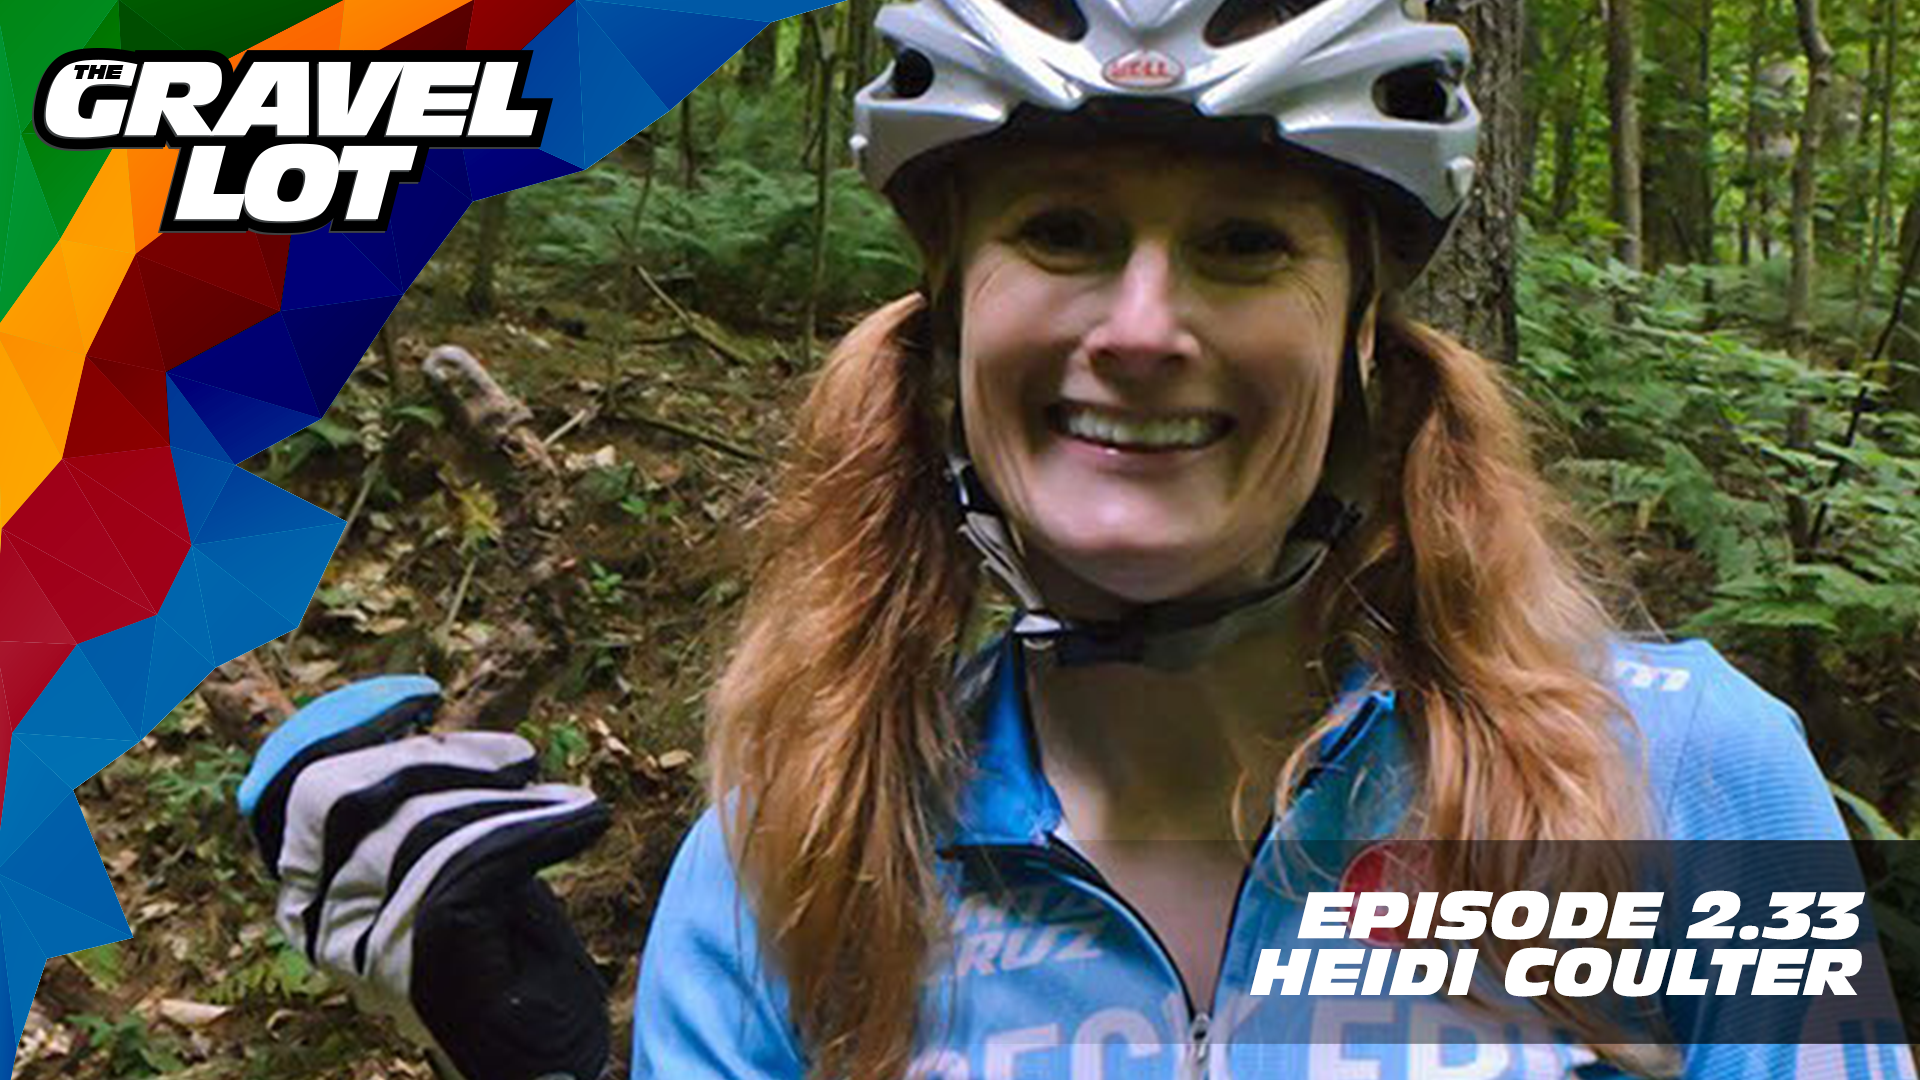 """Heidi Coulter is the Outreach Coordinator for Yay Bikes! in Columbus, Ohio by day, and the President of Central Ohio Mountain Biking Organization (COMBO) after hours. Somewhere in between, she finds time to train and compete as an ultra-endurance athlete. She joins us in the studio this week to talk about all that and more!   Exclusive Preview of Unknown Country: One man's inspirational journey to the Dirty Kanza XL    Visit The Gravel Lot website for our latest podcast, Real Talk videos, Bonus Content, shop, social media, and everything in between.    Grimpeur Brothers Coffee: Purchase The Full Schleck or Hello Cyclocross Friends Espresso and support WAP today!    Handup Gloves: Use code """"PEBBLE$"""" for 20% off EVERYTHING in store.    RoadID: Save $10 off ANY order over $20.    Magas Law Firm:    Be Free Ride Bikes:    Noxgear: Use code """"PEBBLES"""" for 35% off any item.   Subscribe to The Gravel Lot on the  Wide Angle Podium Network and become a member TODAY and get access to EXCLUSIVE bonus content.   Learn more about Undertipper and download their latest album """"Y'all"""" at:  http://undertipper.bandcamp.com/"""